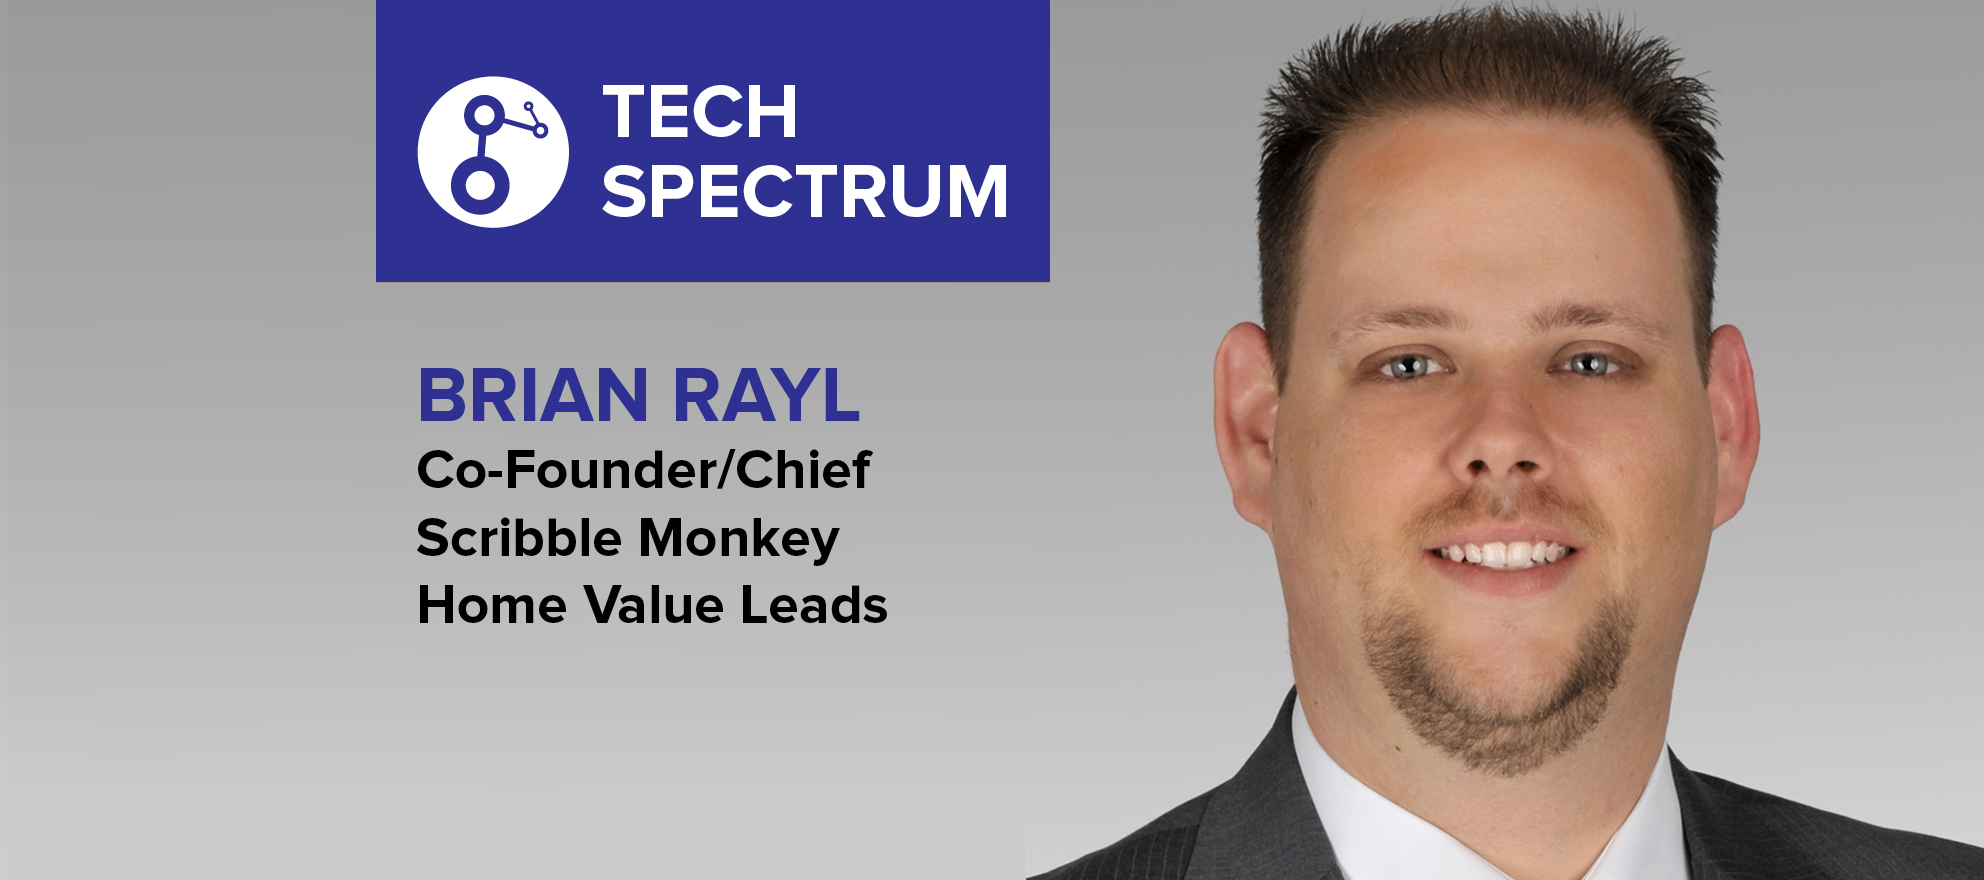 Brian Rayl: 'When it comes to unproven technology, I hold out but keep a close eye'